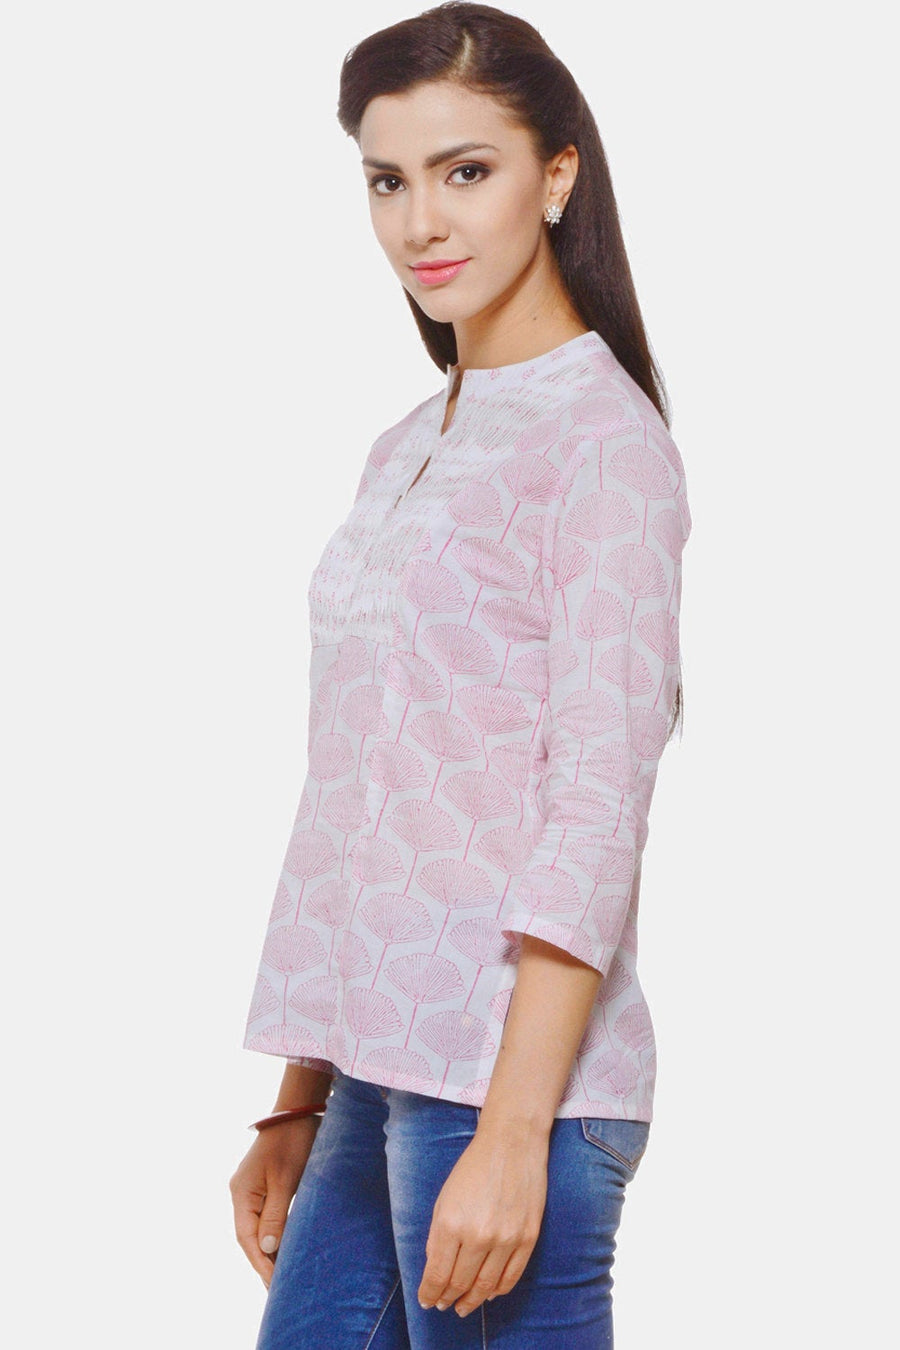 Soft Pink Hand Block Printed Top